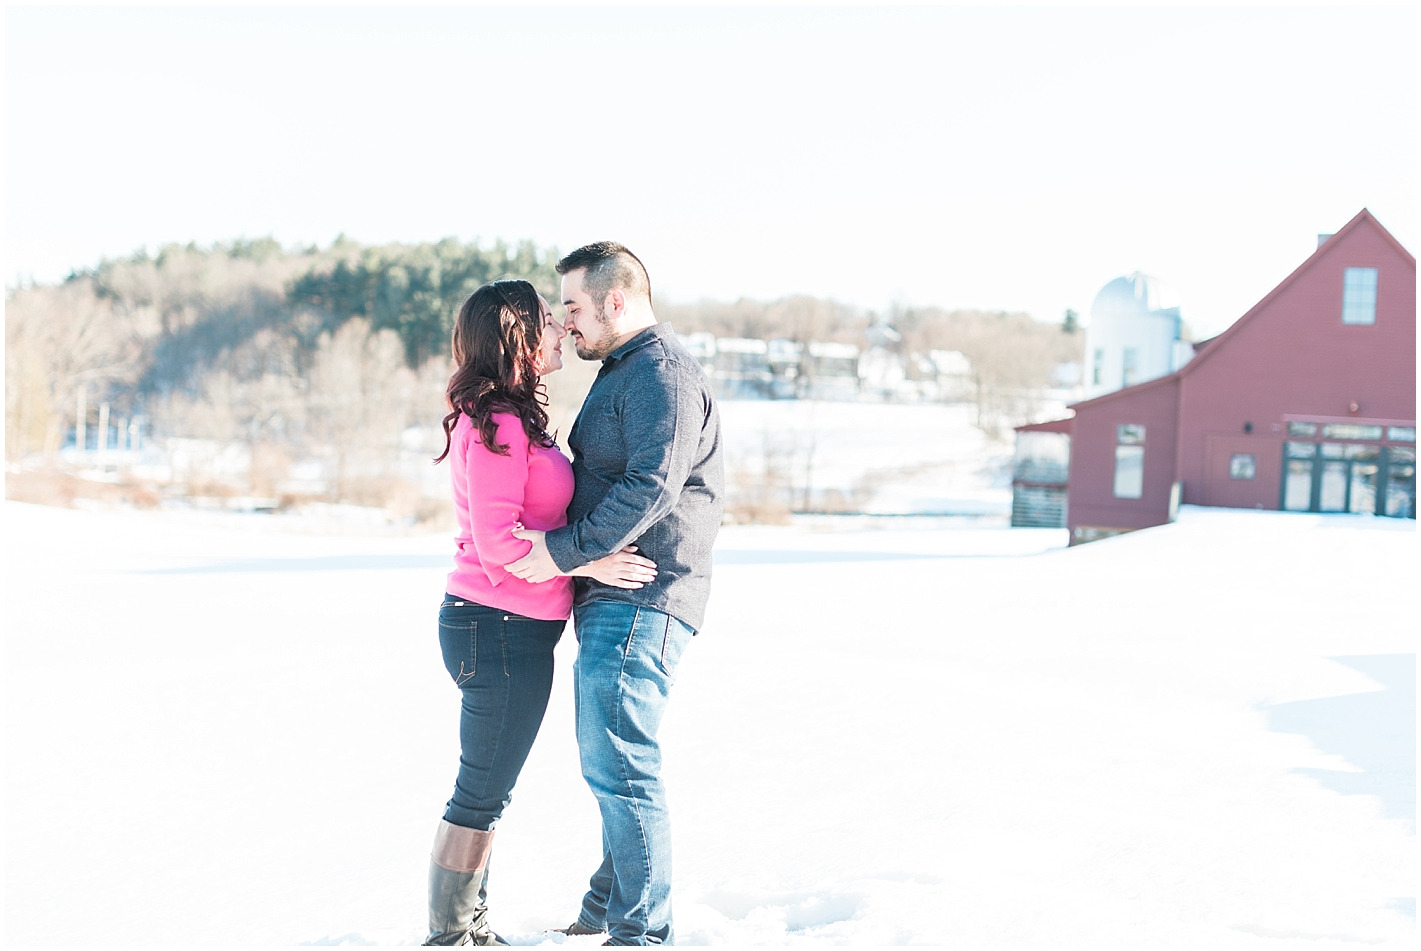 snowy engagement session photos by Alyssa Parker Photography